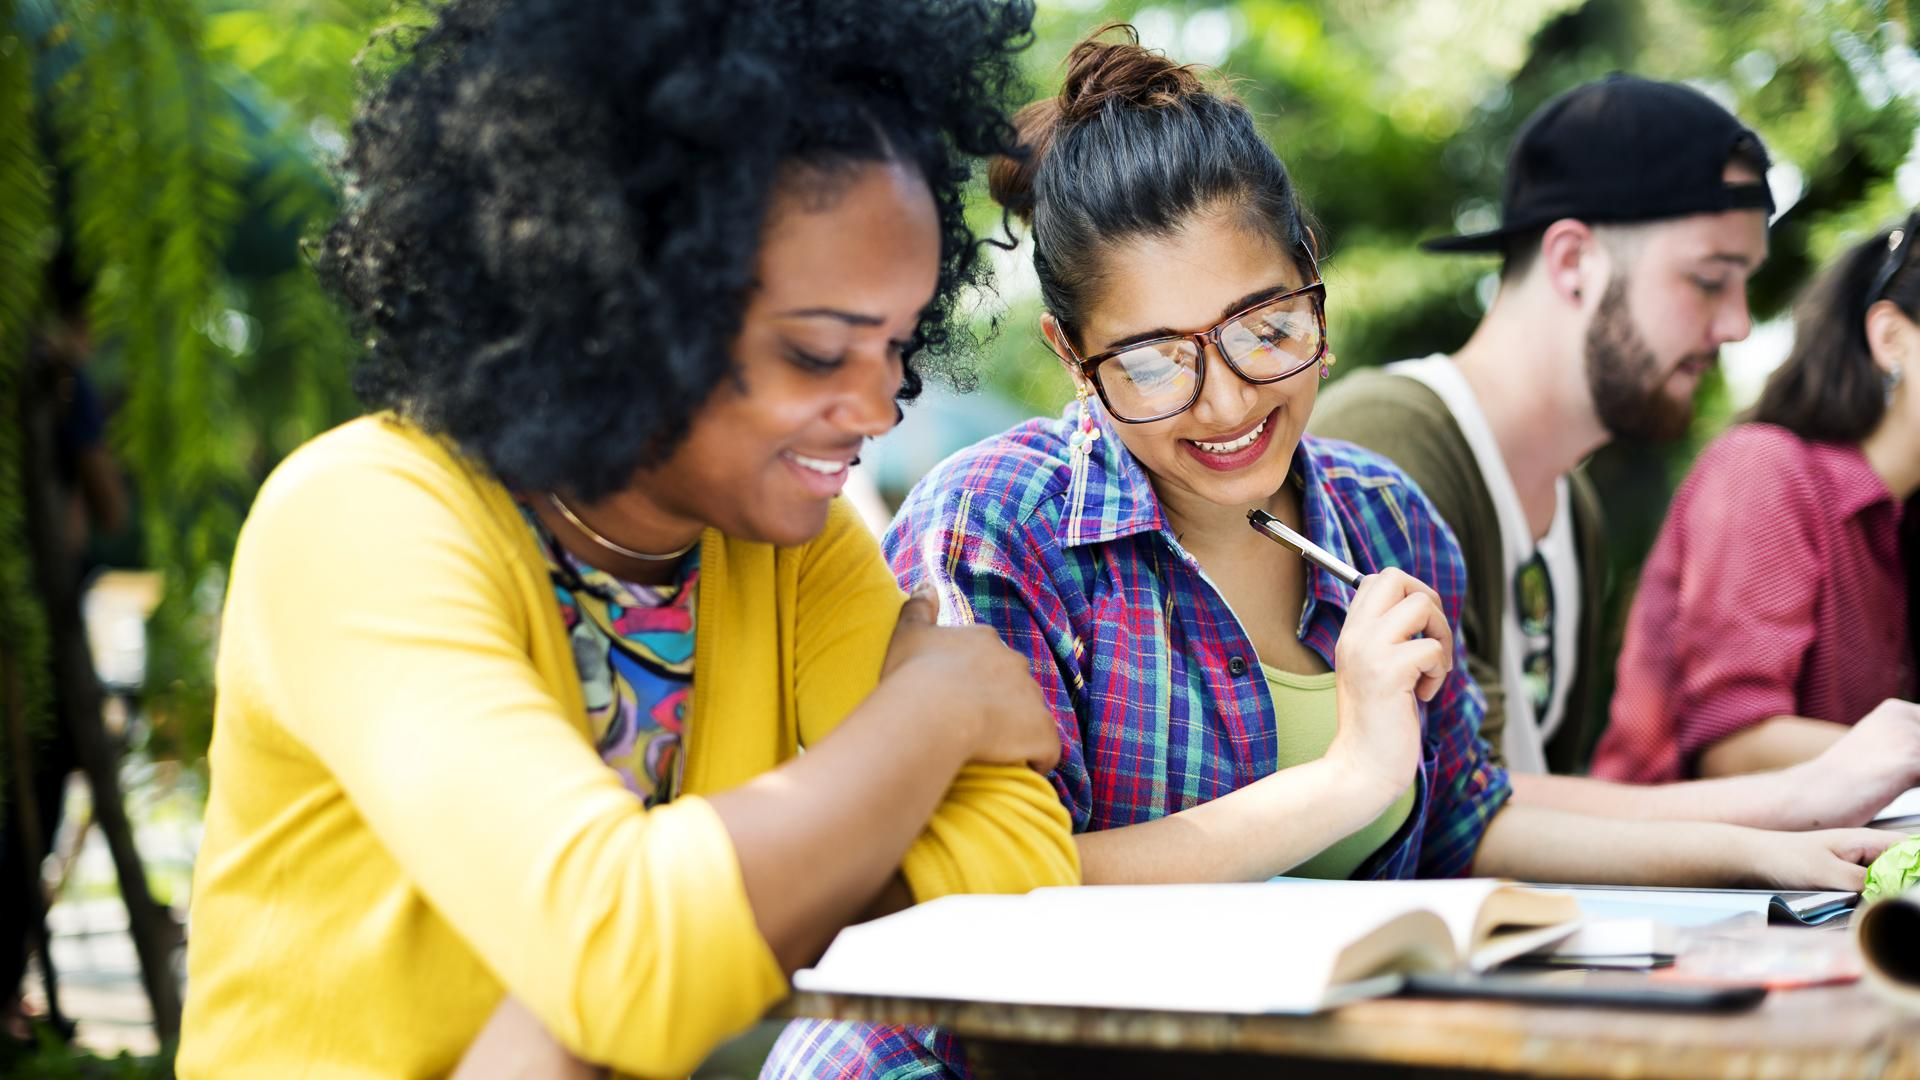 Women Outnumber Men on College Campuses